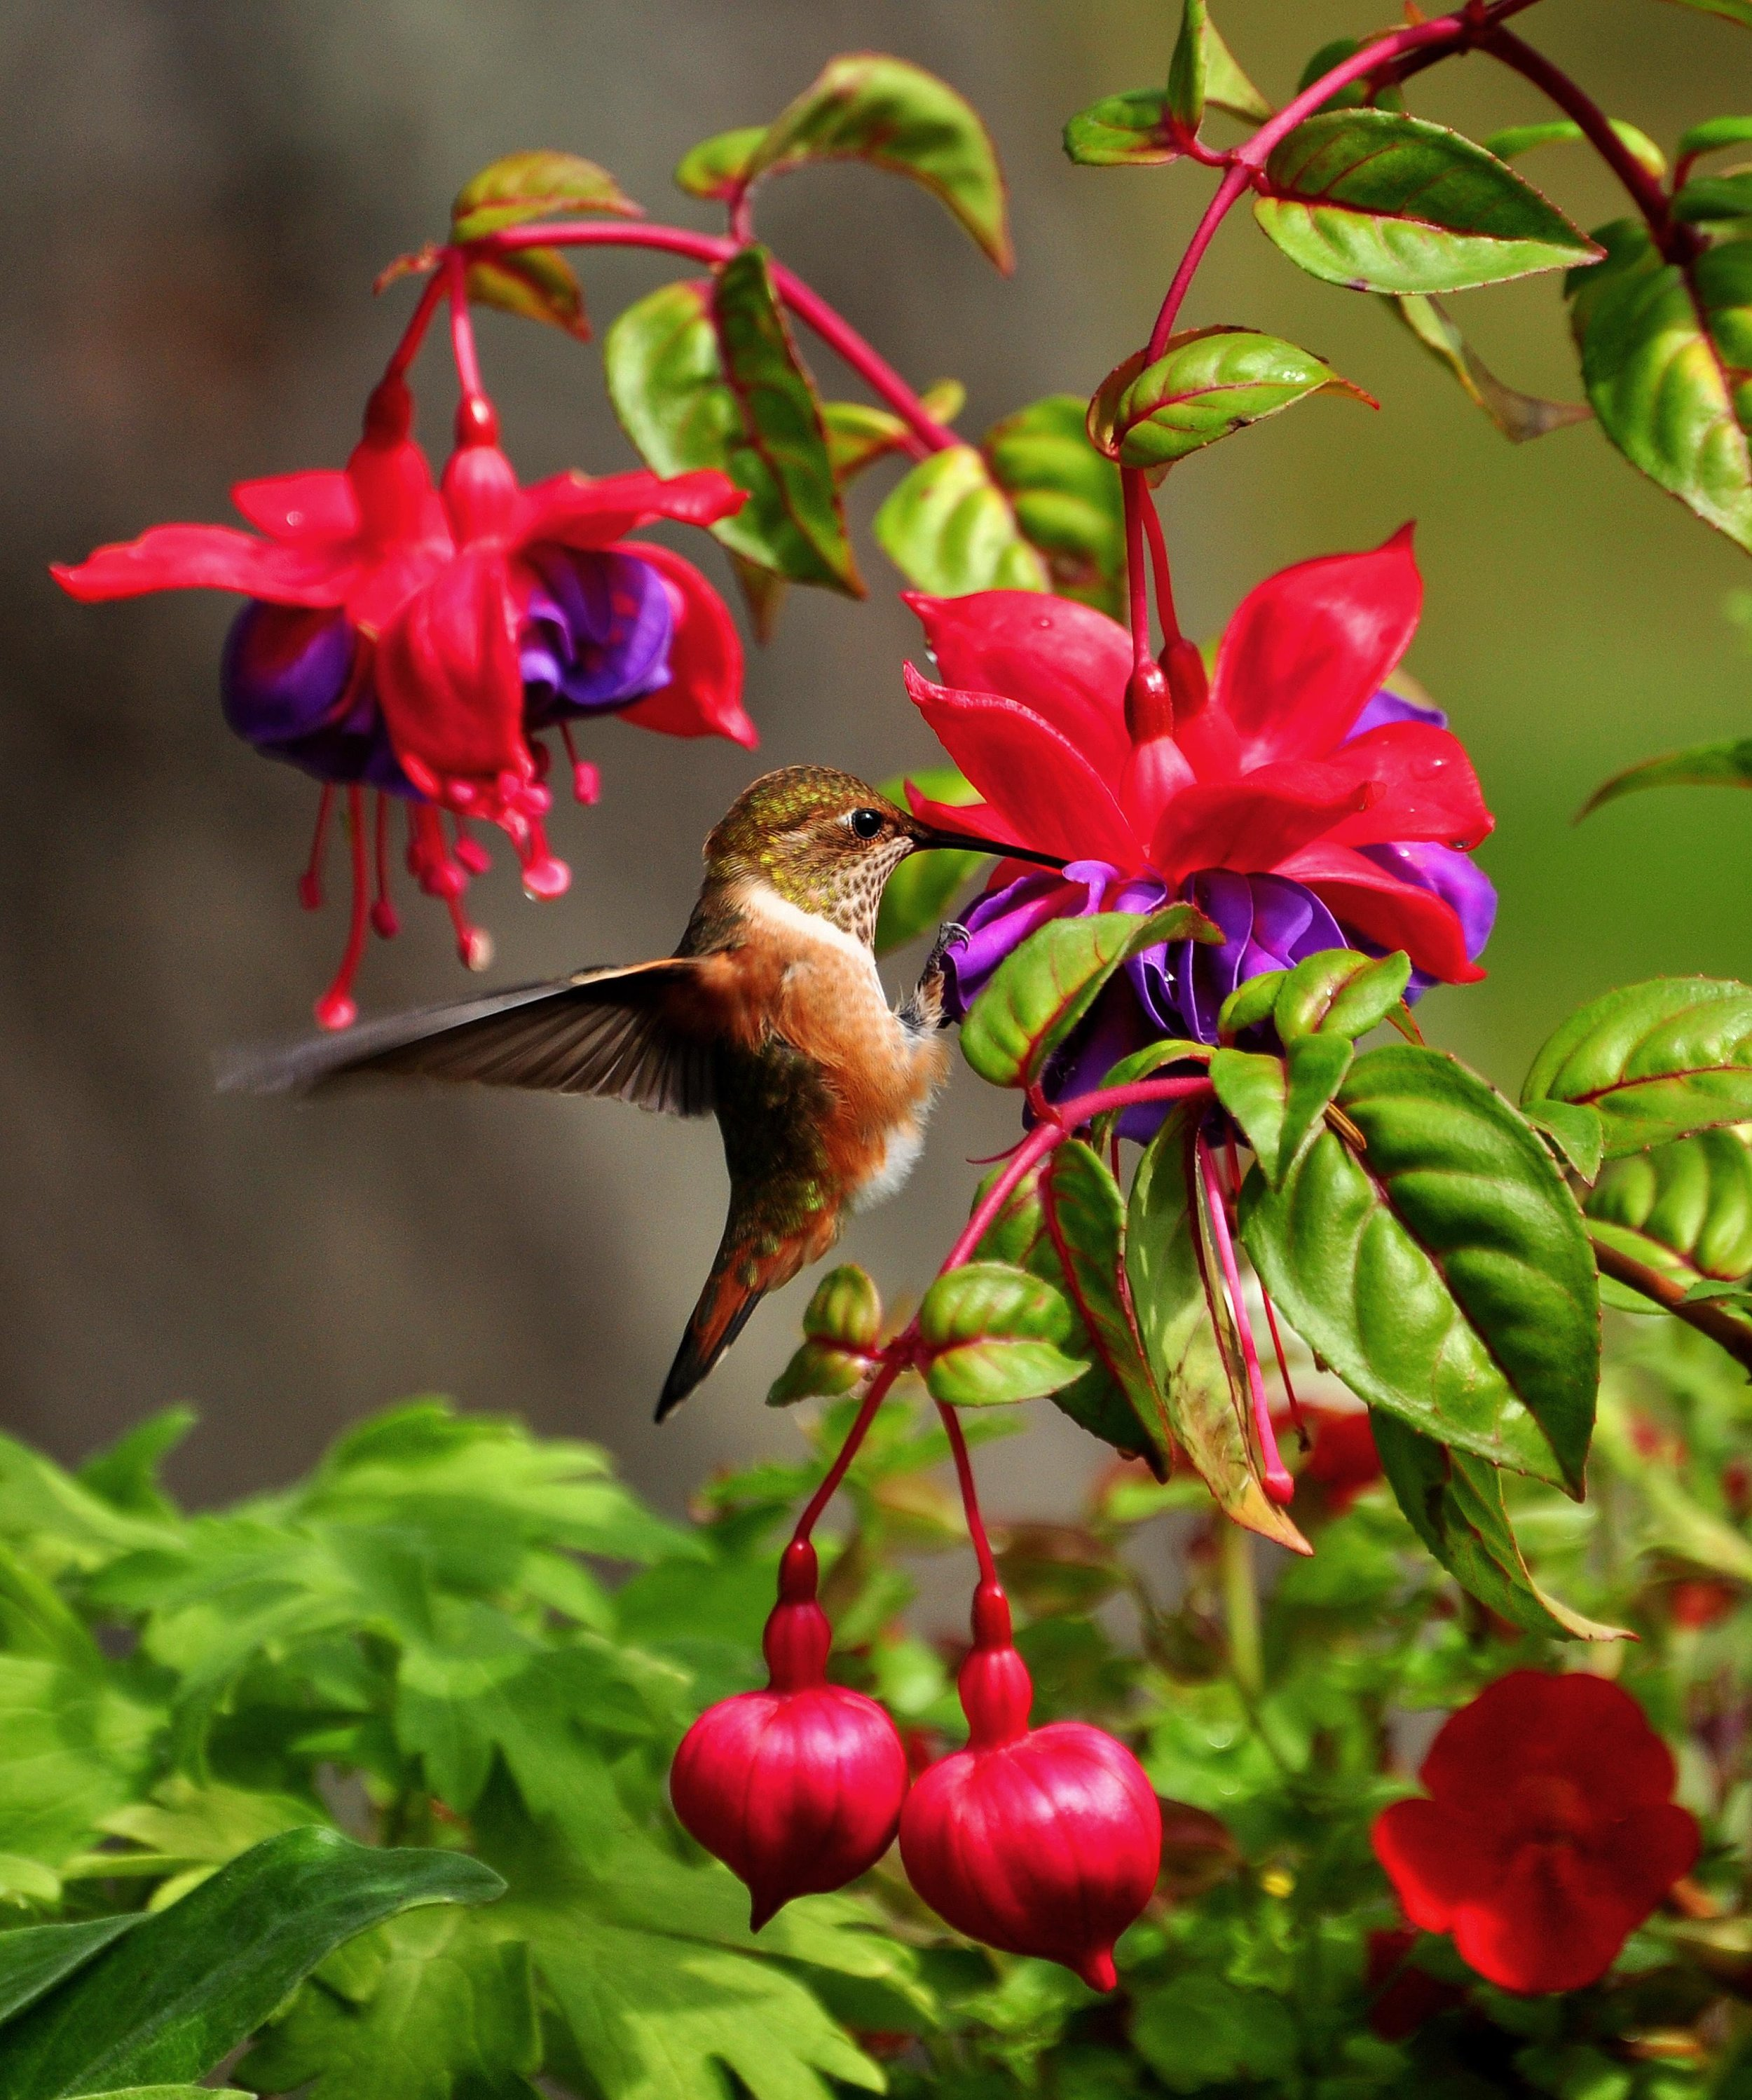 Laying out the welcome mat for hummingbirds is easier than you may think. Set your backyard abuzz with excitement this summer with these 7 hummingbird-happy secrets! Read more —-> http://www.happyhearthappyhome.com/blog/welcome-hummingbirds-home